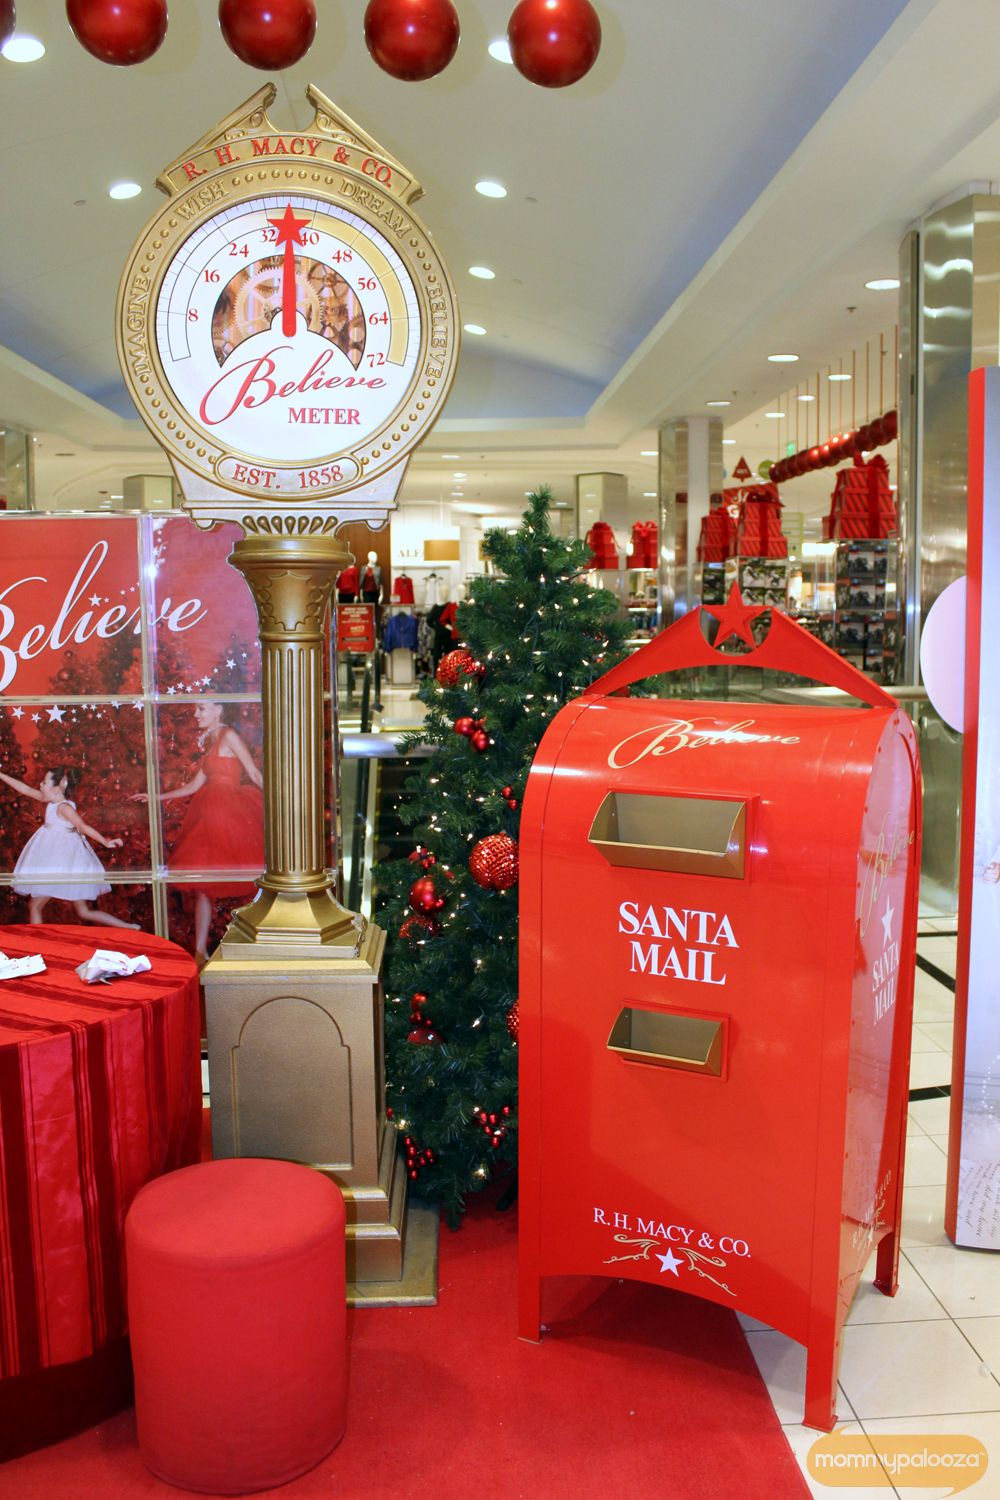 Write A A Letter To Santa And Make A Million Wishes Come True With Macy S Nyc Christmas Santa Letter Santa Claus Decorations